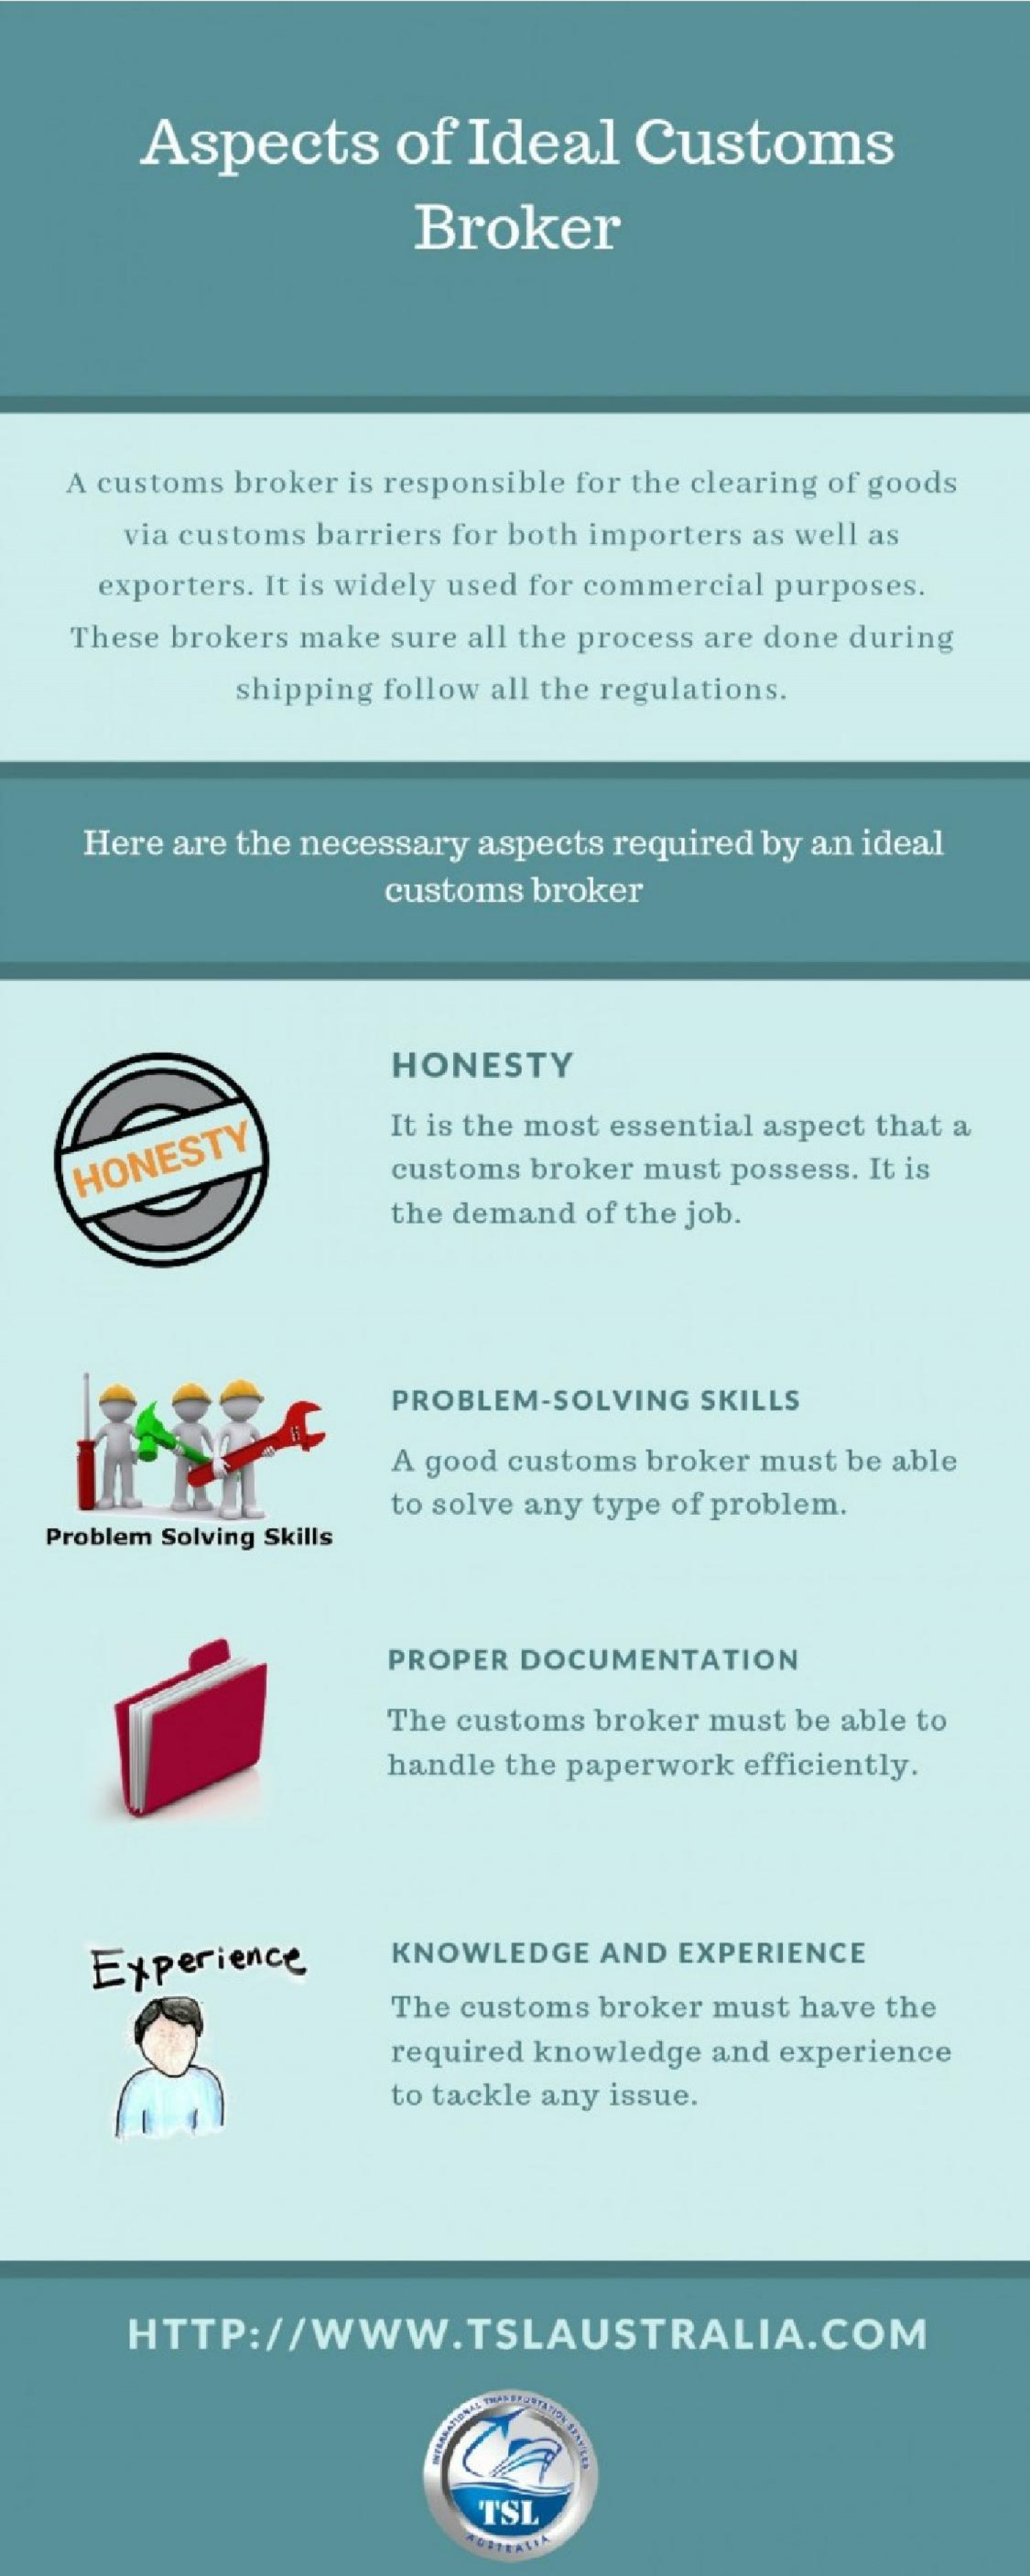 Aspects of Ideal Customs Broker Infographic